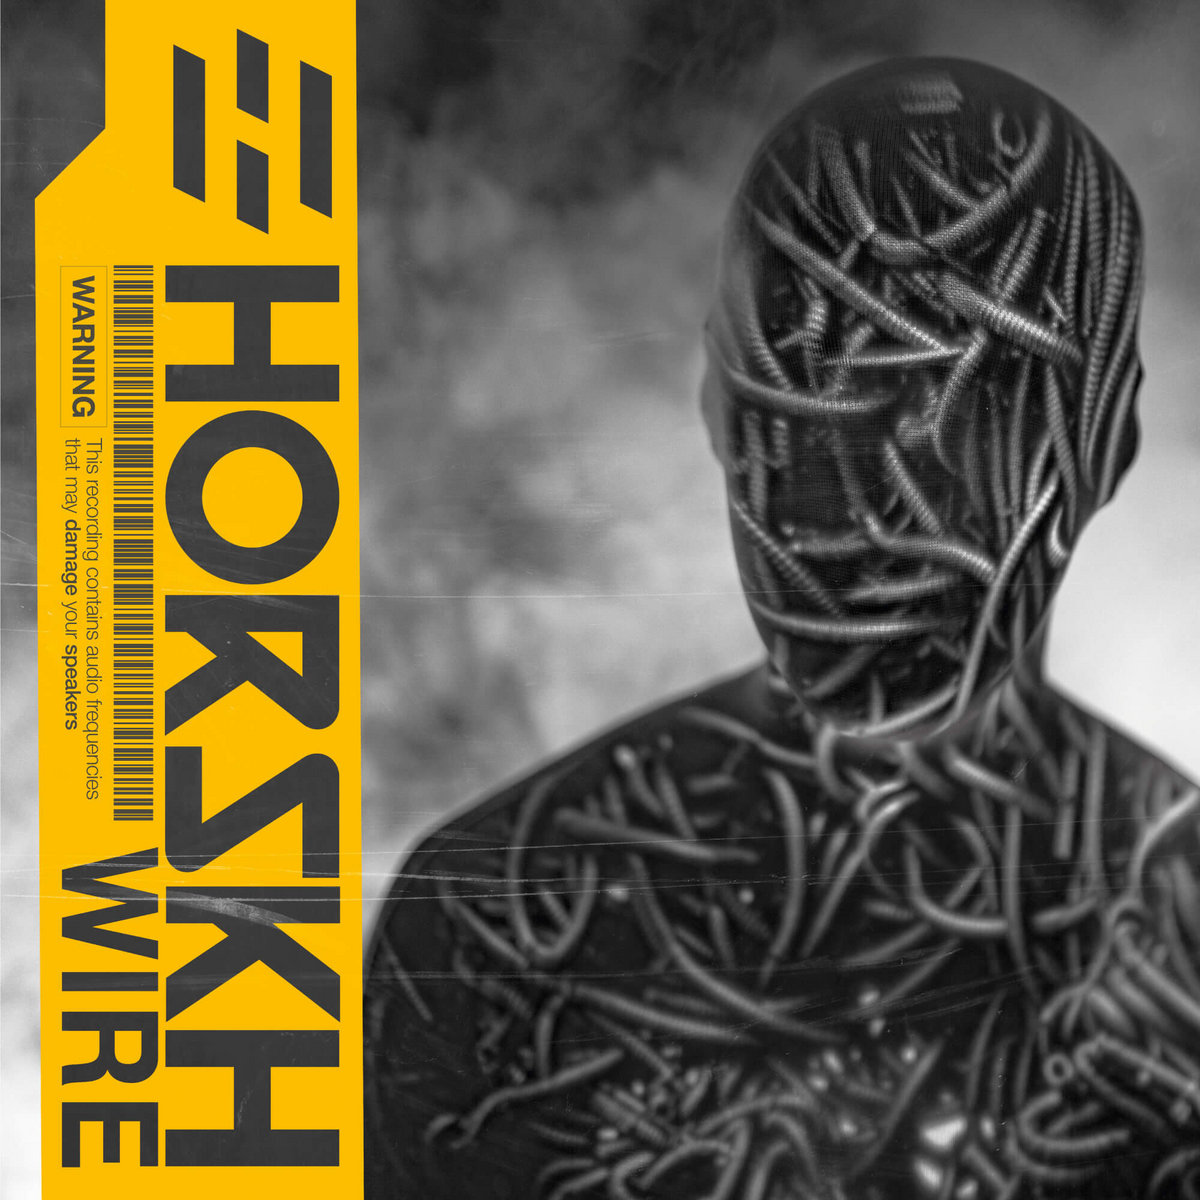 WIRE HORSKH Cover Artwork